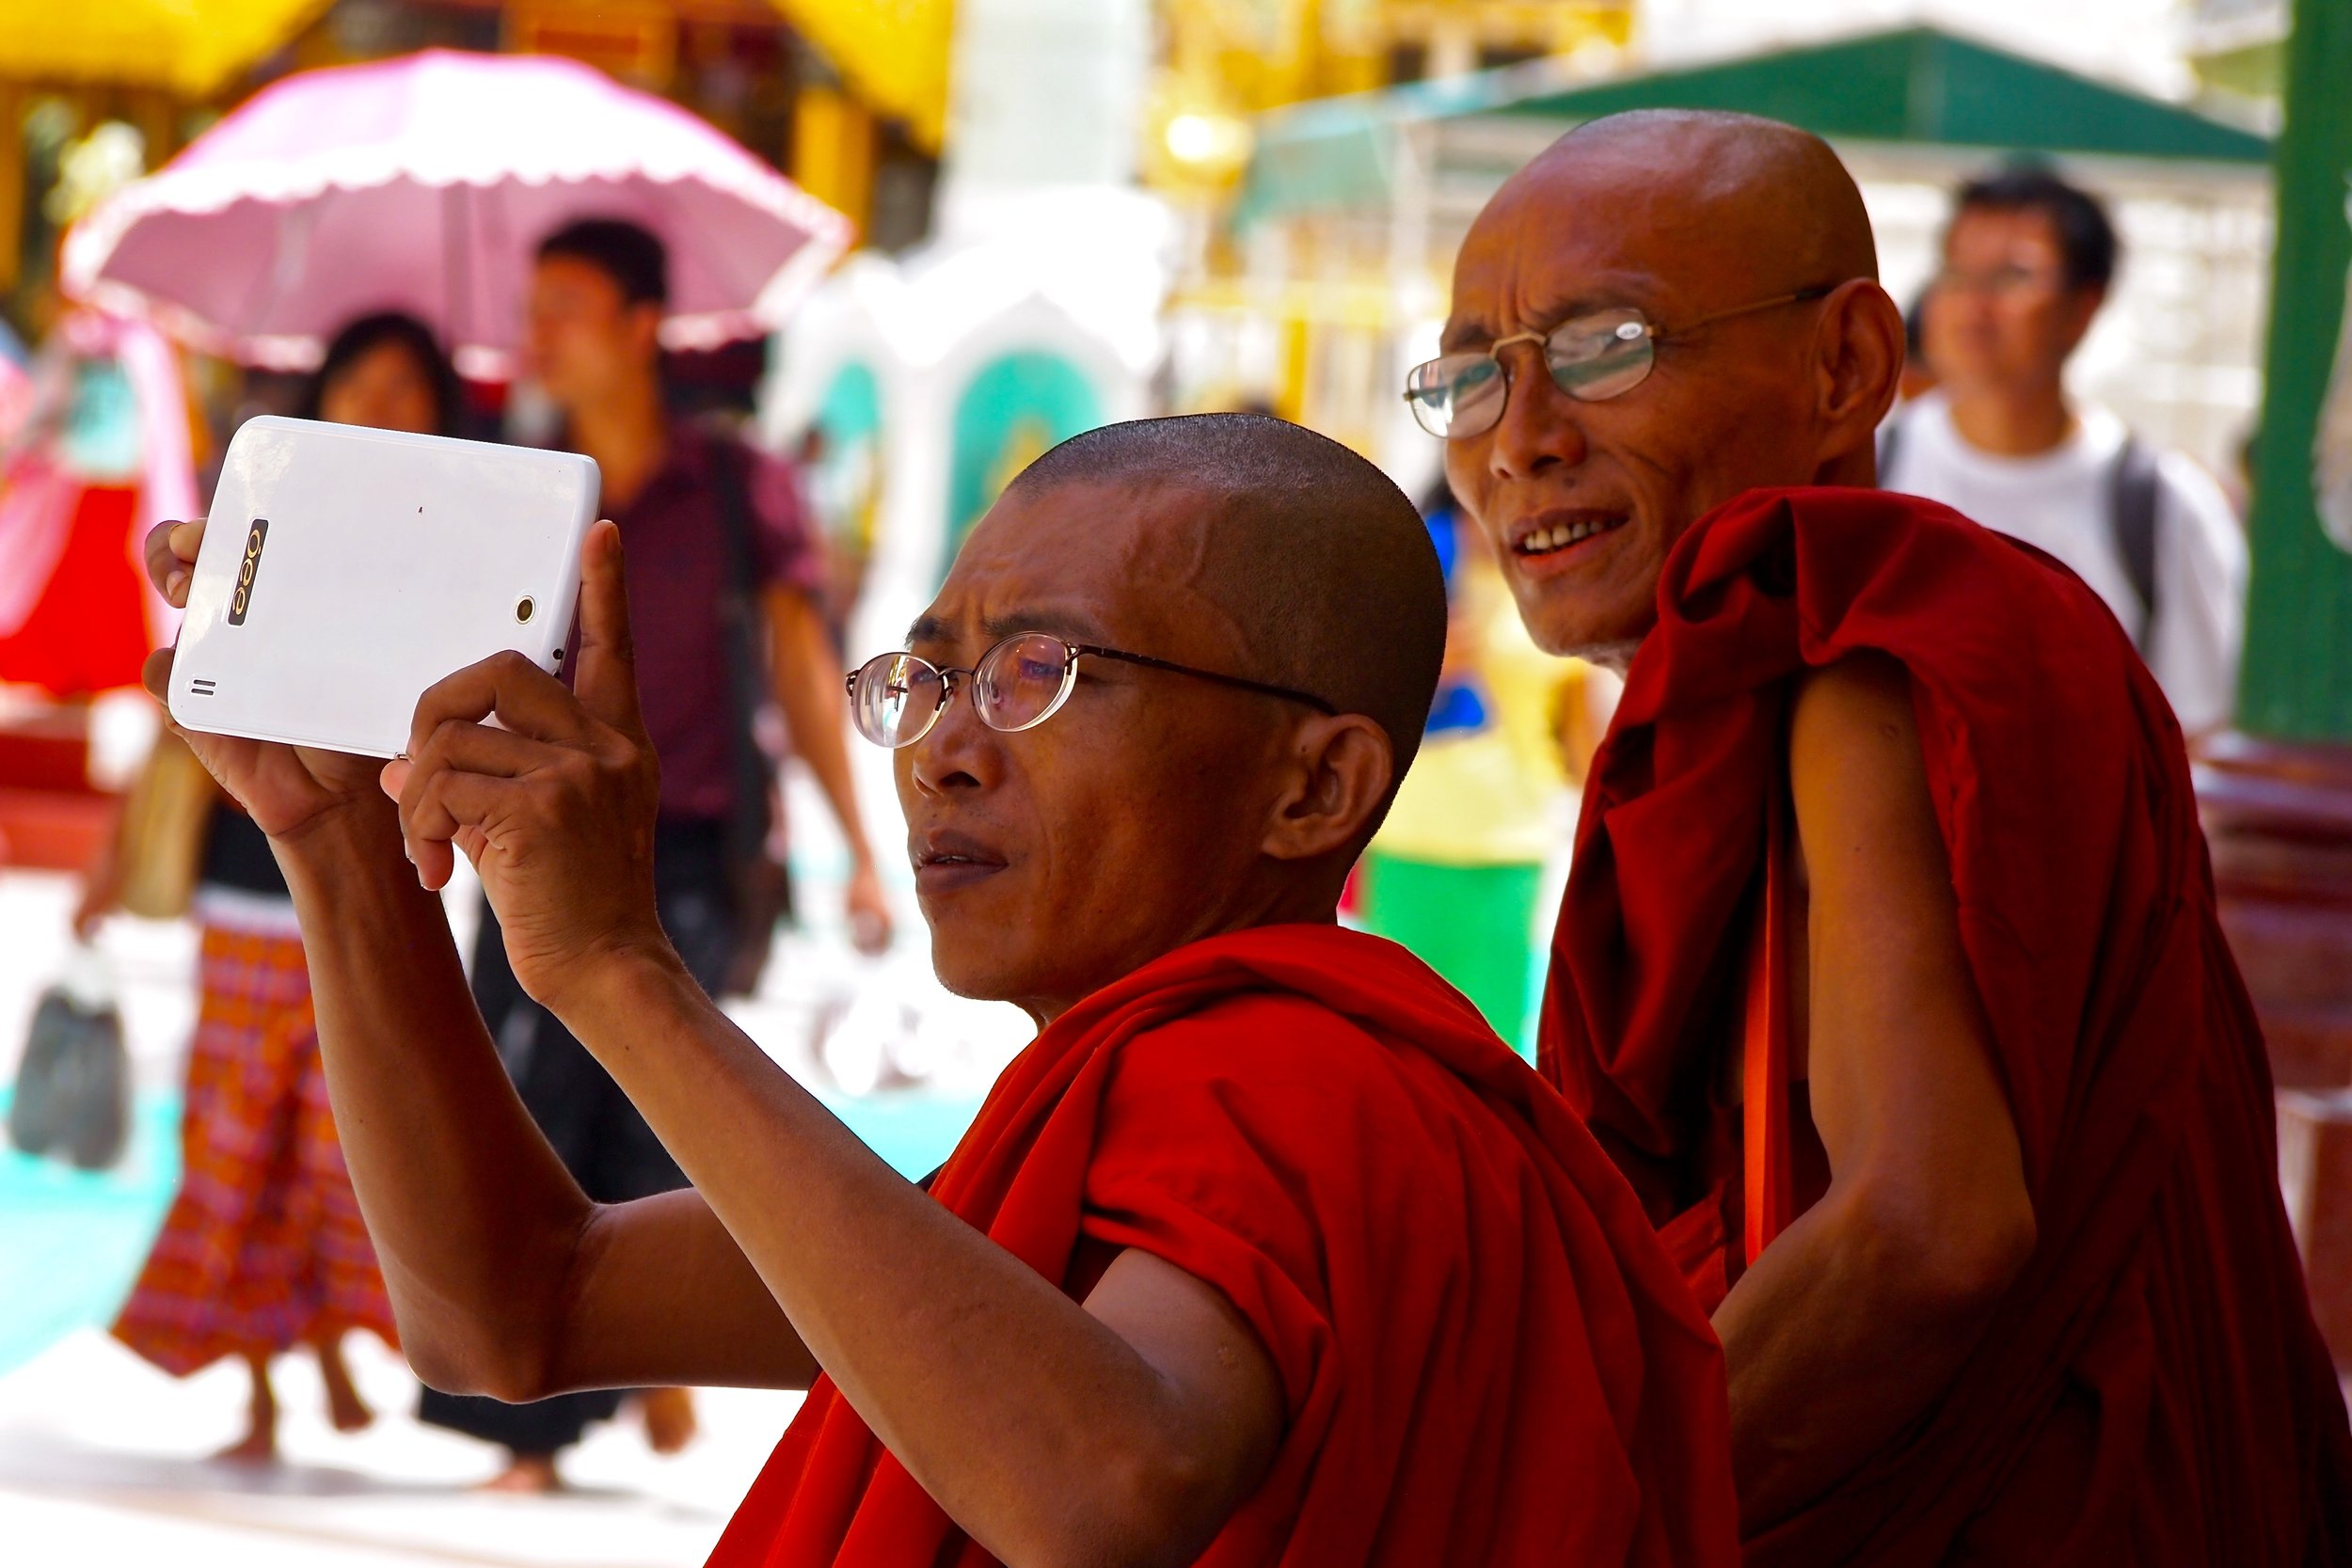 - Myanmar is undergoing rapid changes, from introducing traffic lights to seeing its population armed with the internet. However, the progress proves to be fragile.